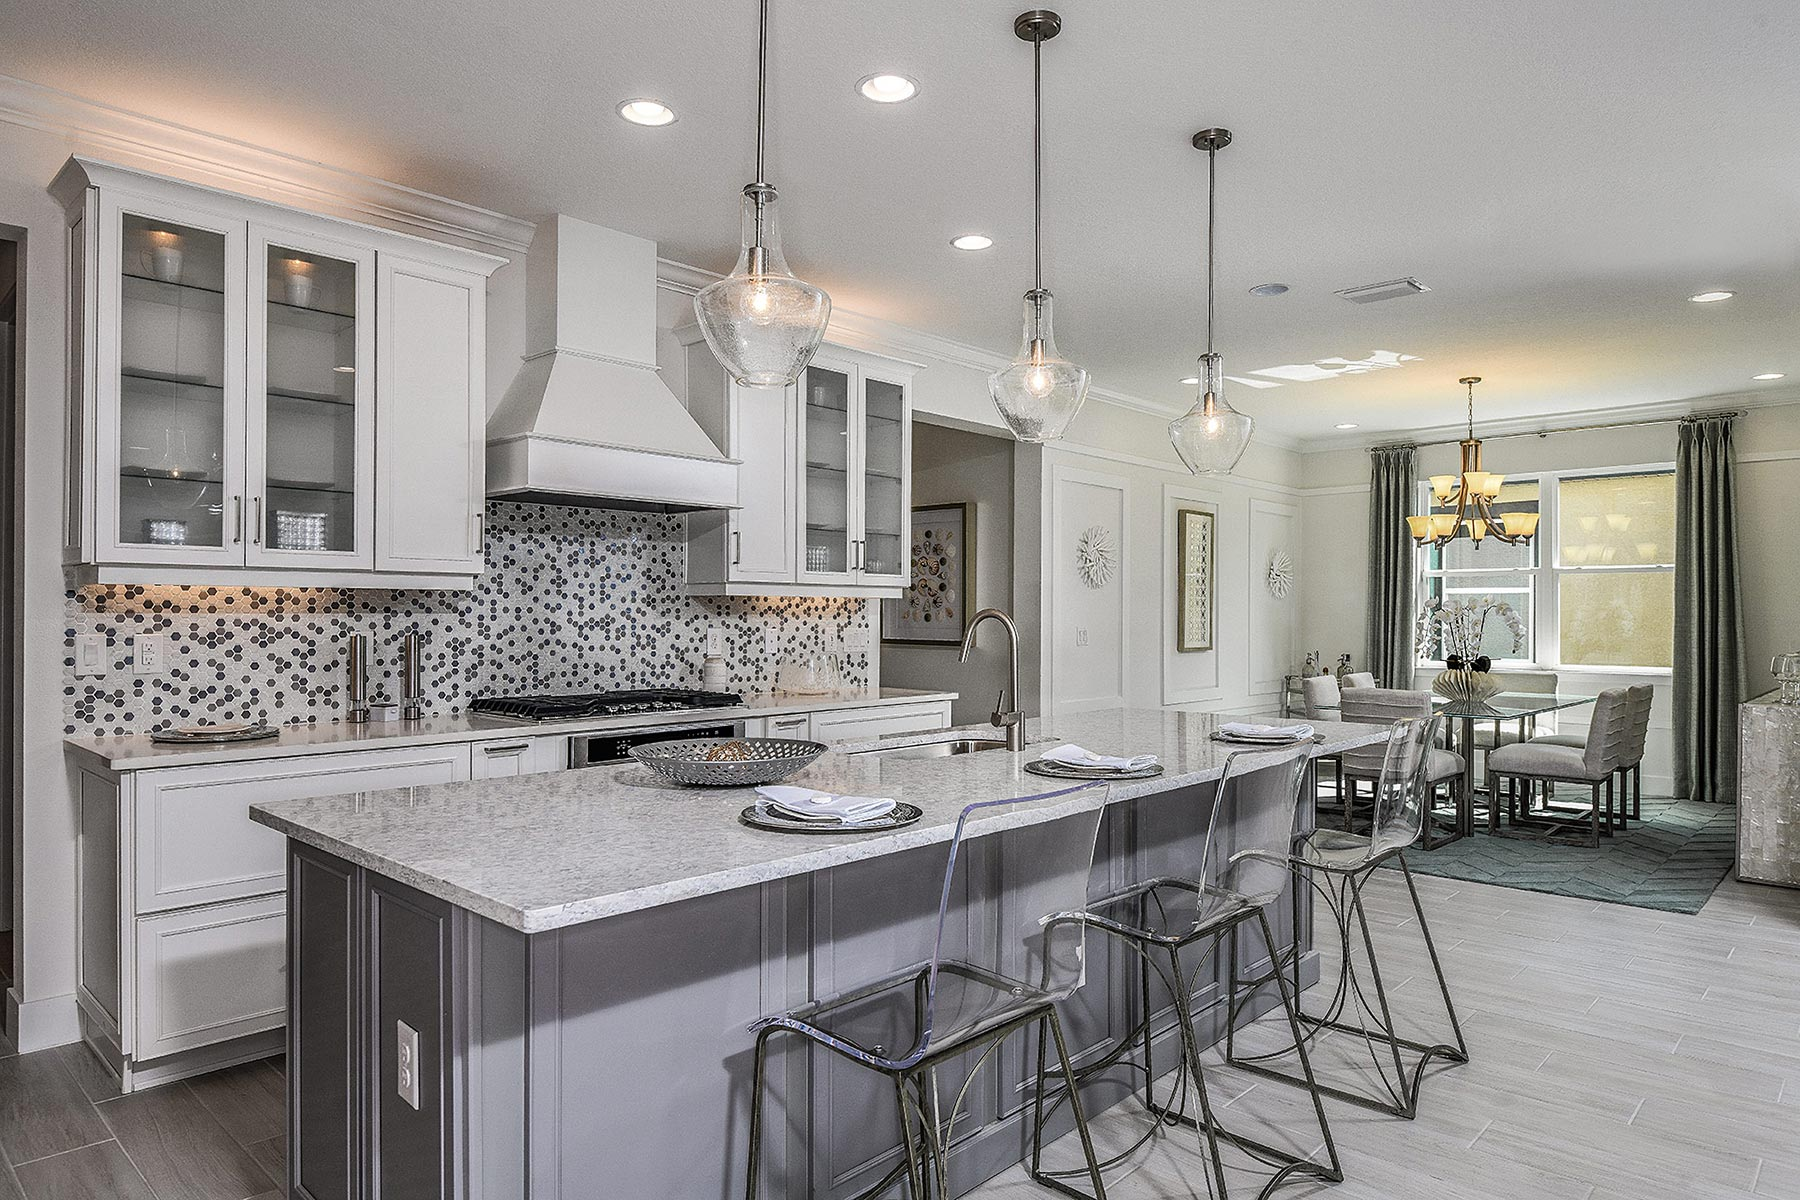 Jubilee Plan Kitchen at Sunrise Preserve at Palmer Ranch in Sarasota Florida by Mattamy Homes